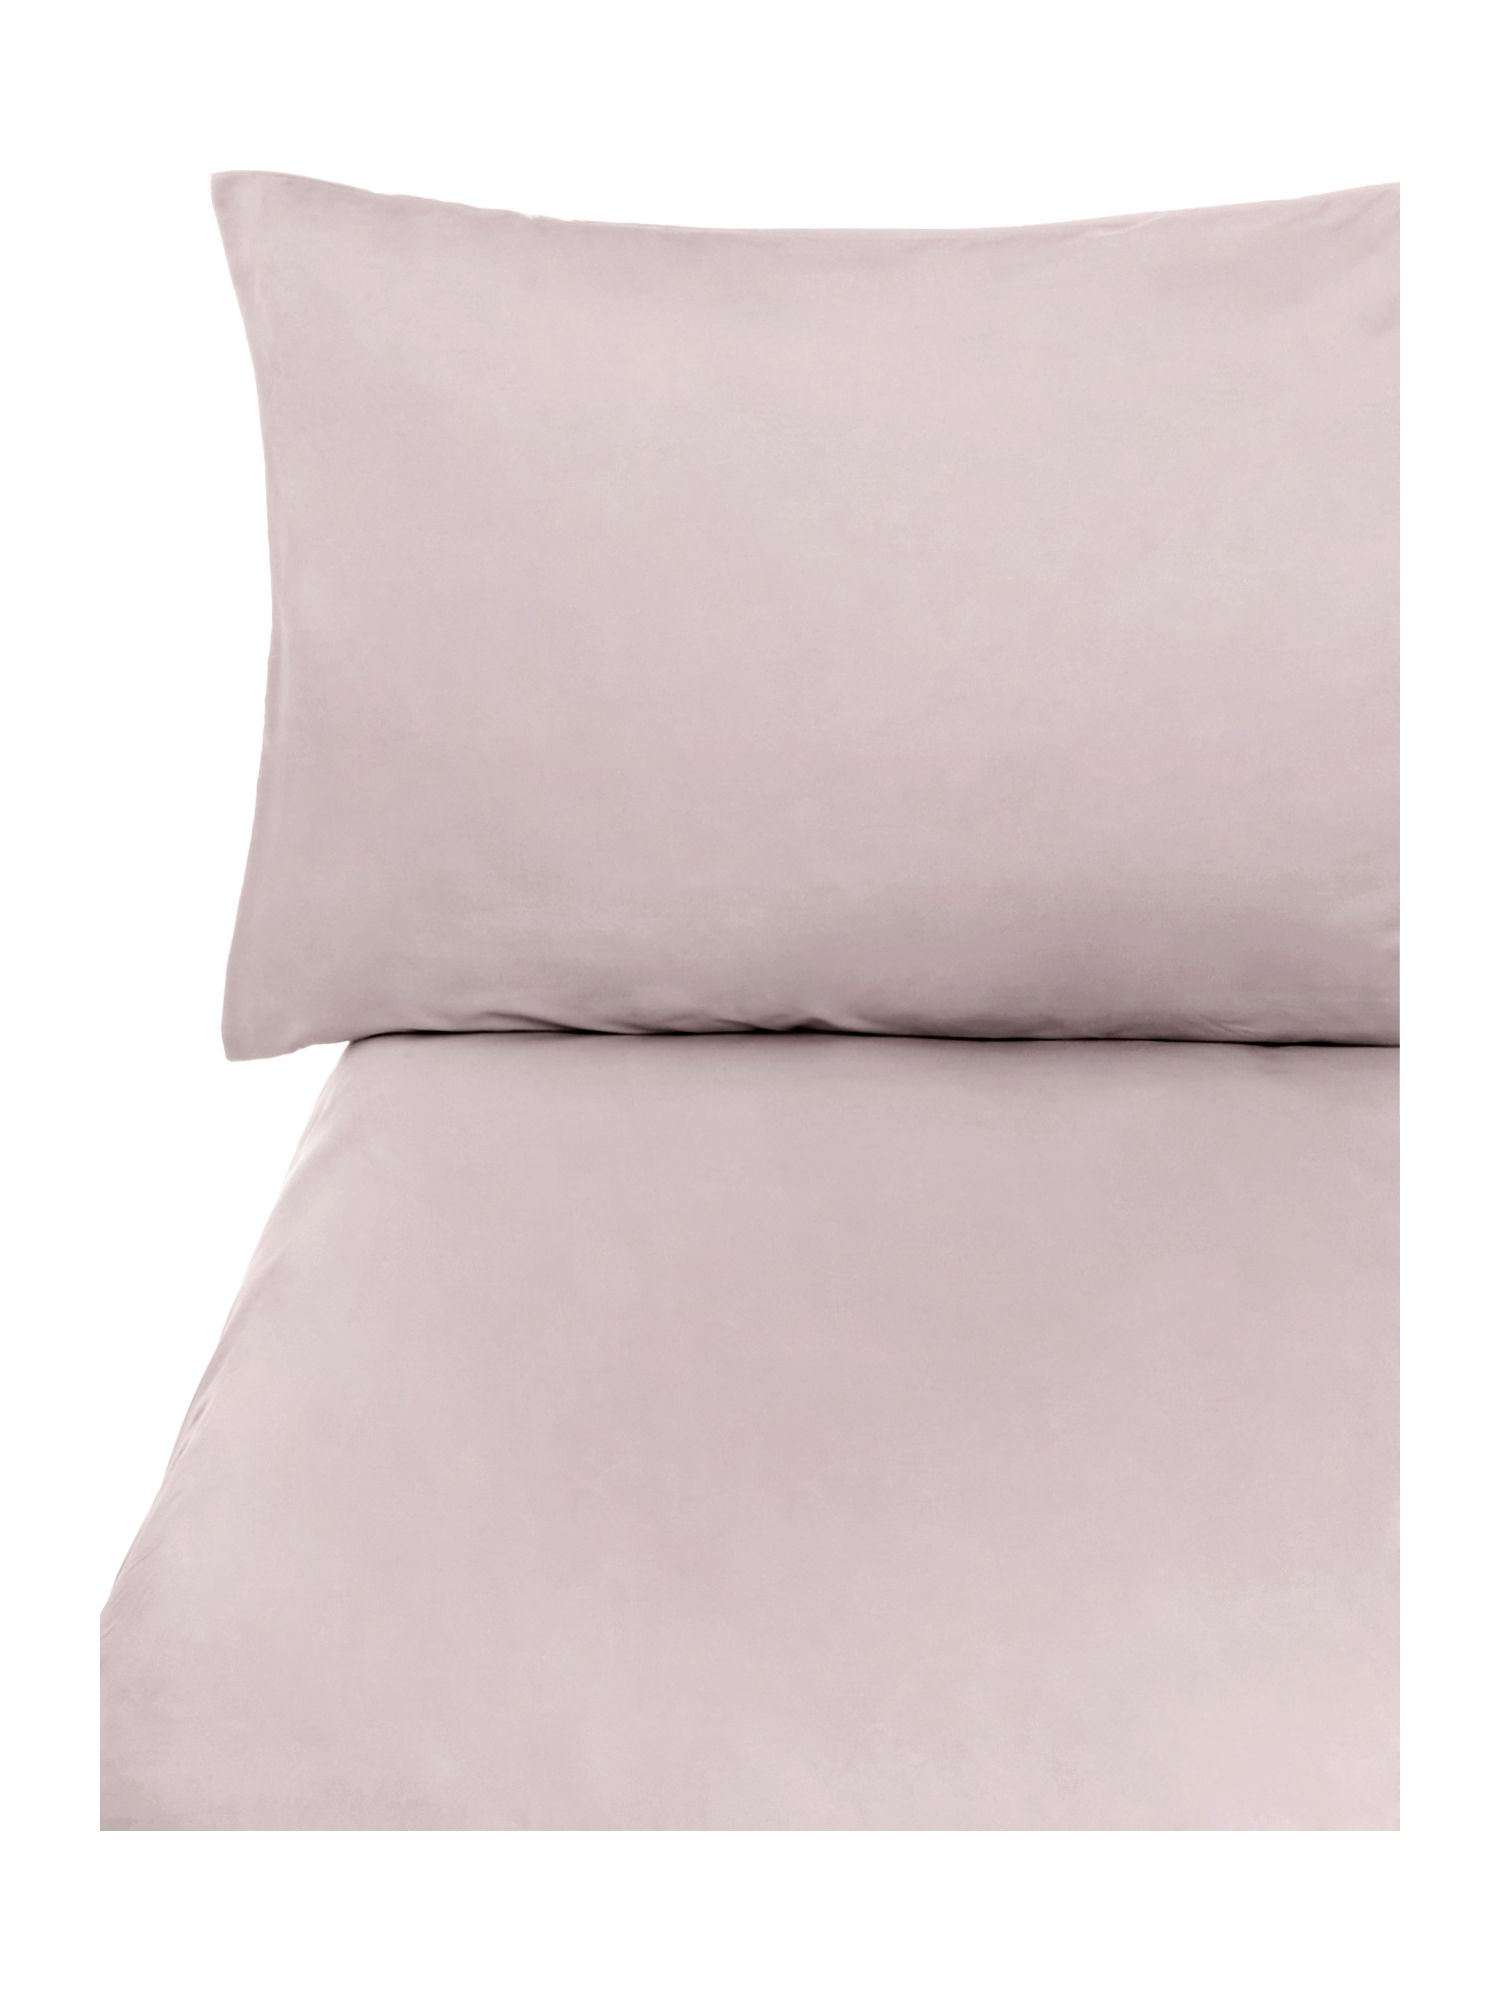 Truffle sheet fitted housewife pillowcase pair